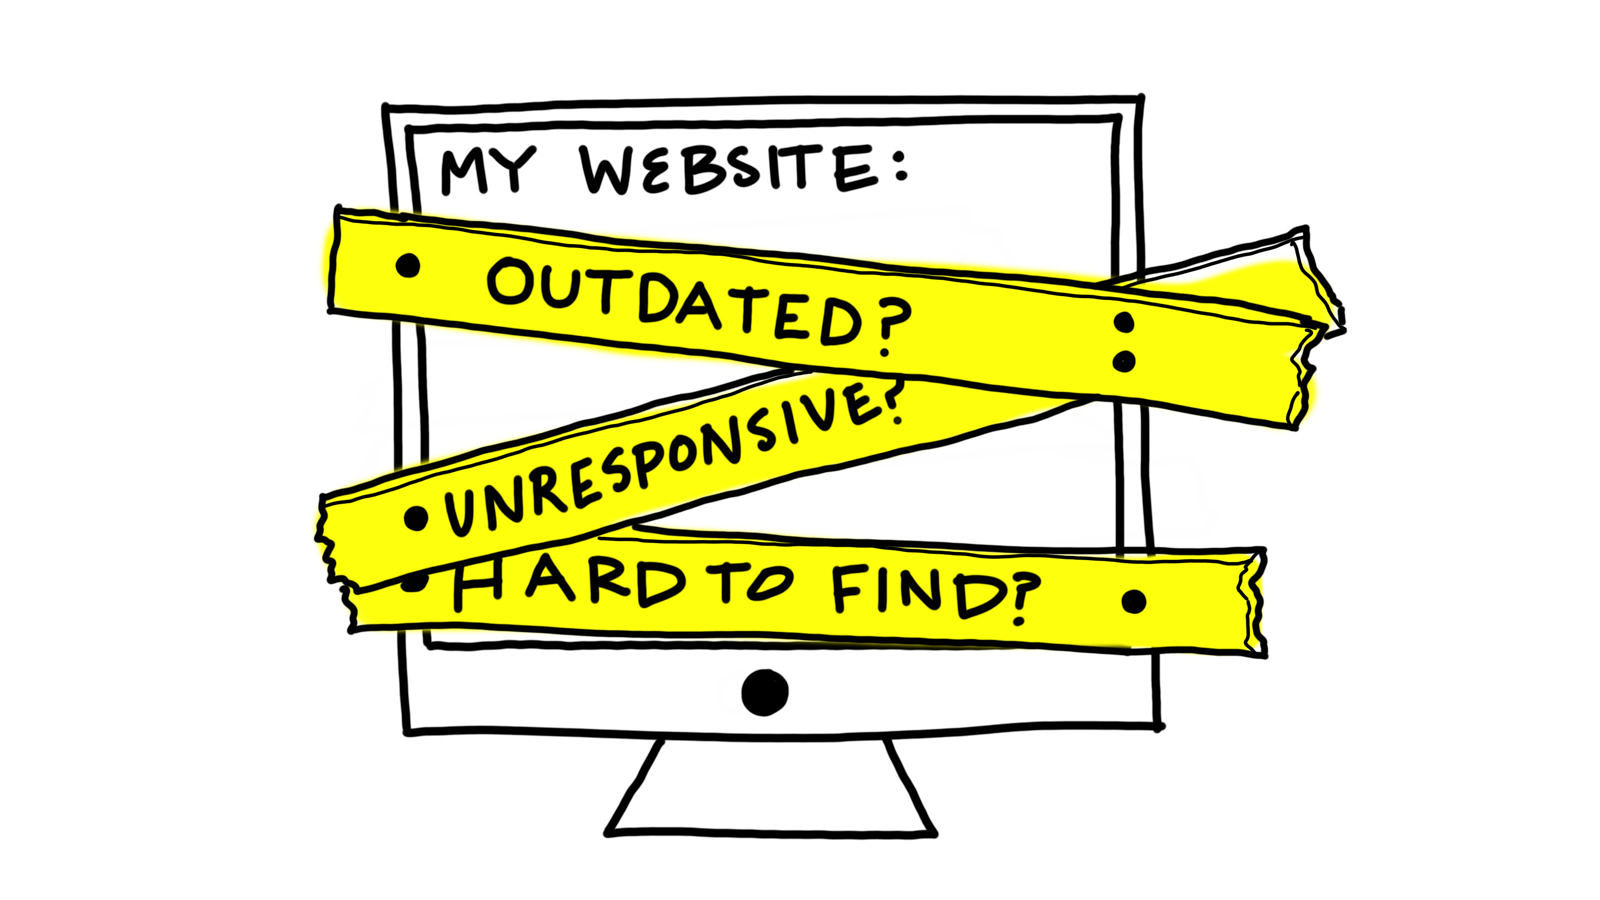 5 Reasons to Redo Your Website in 2018